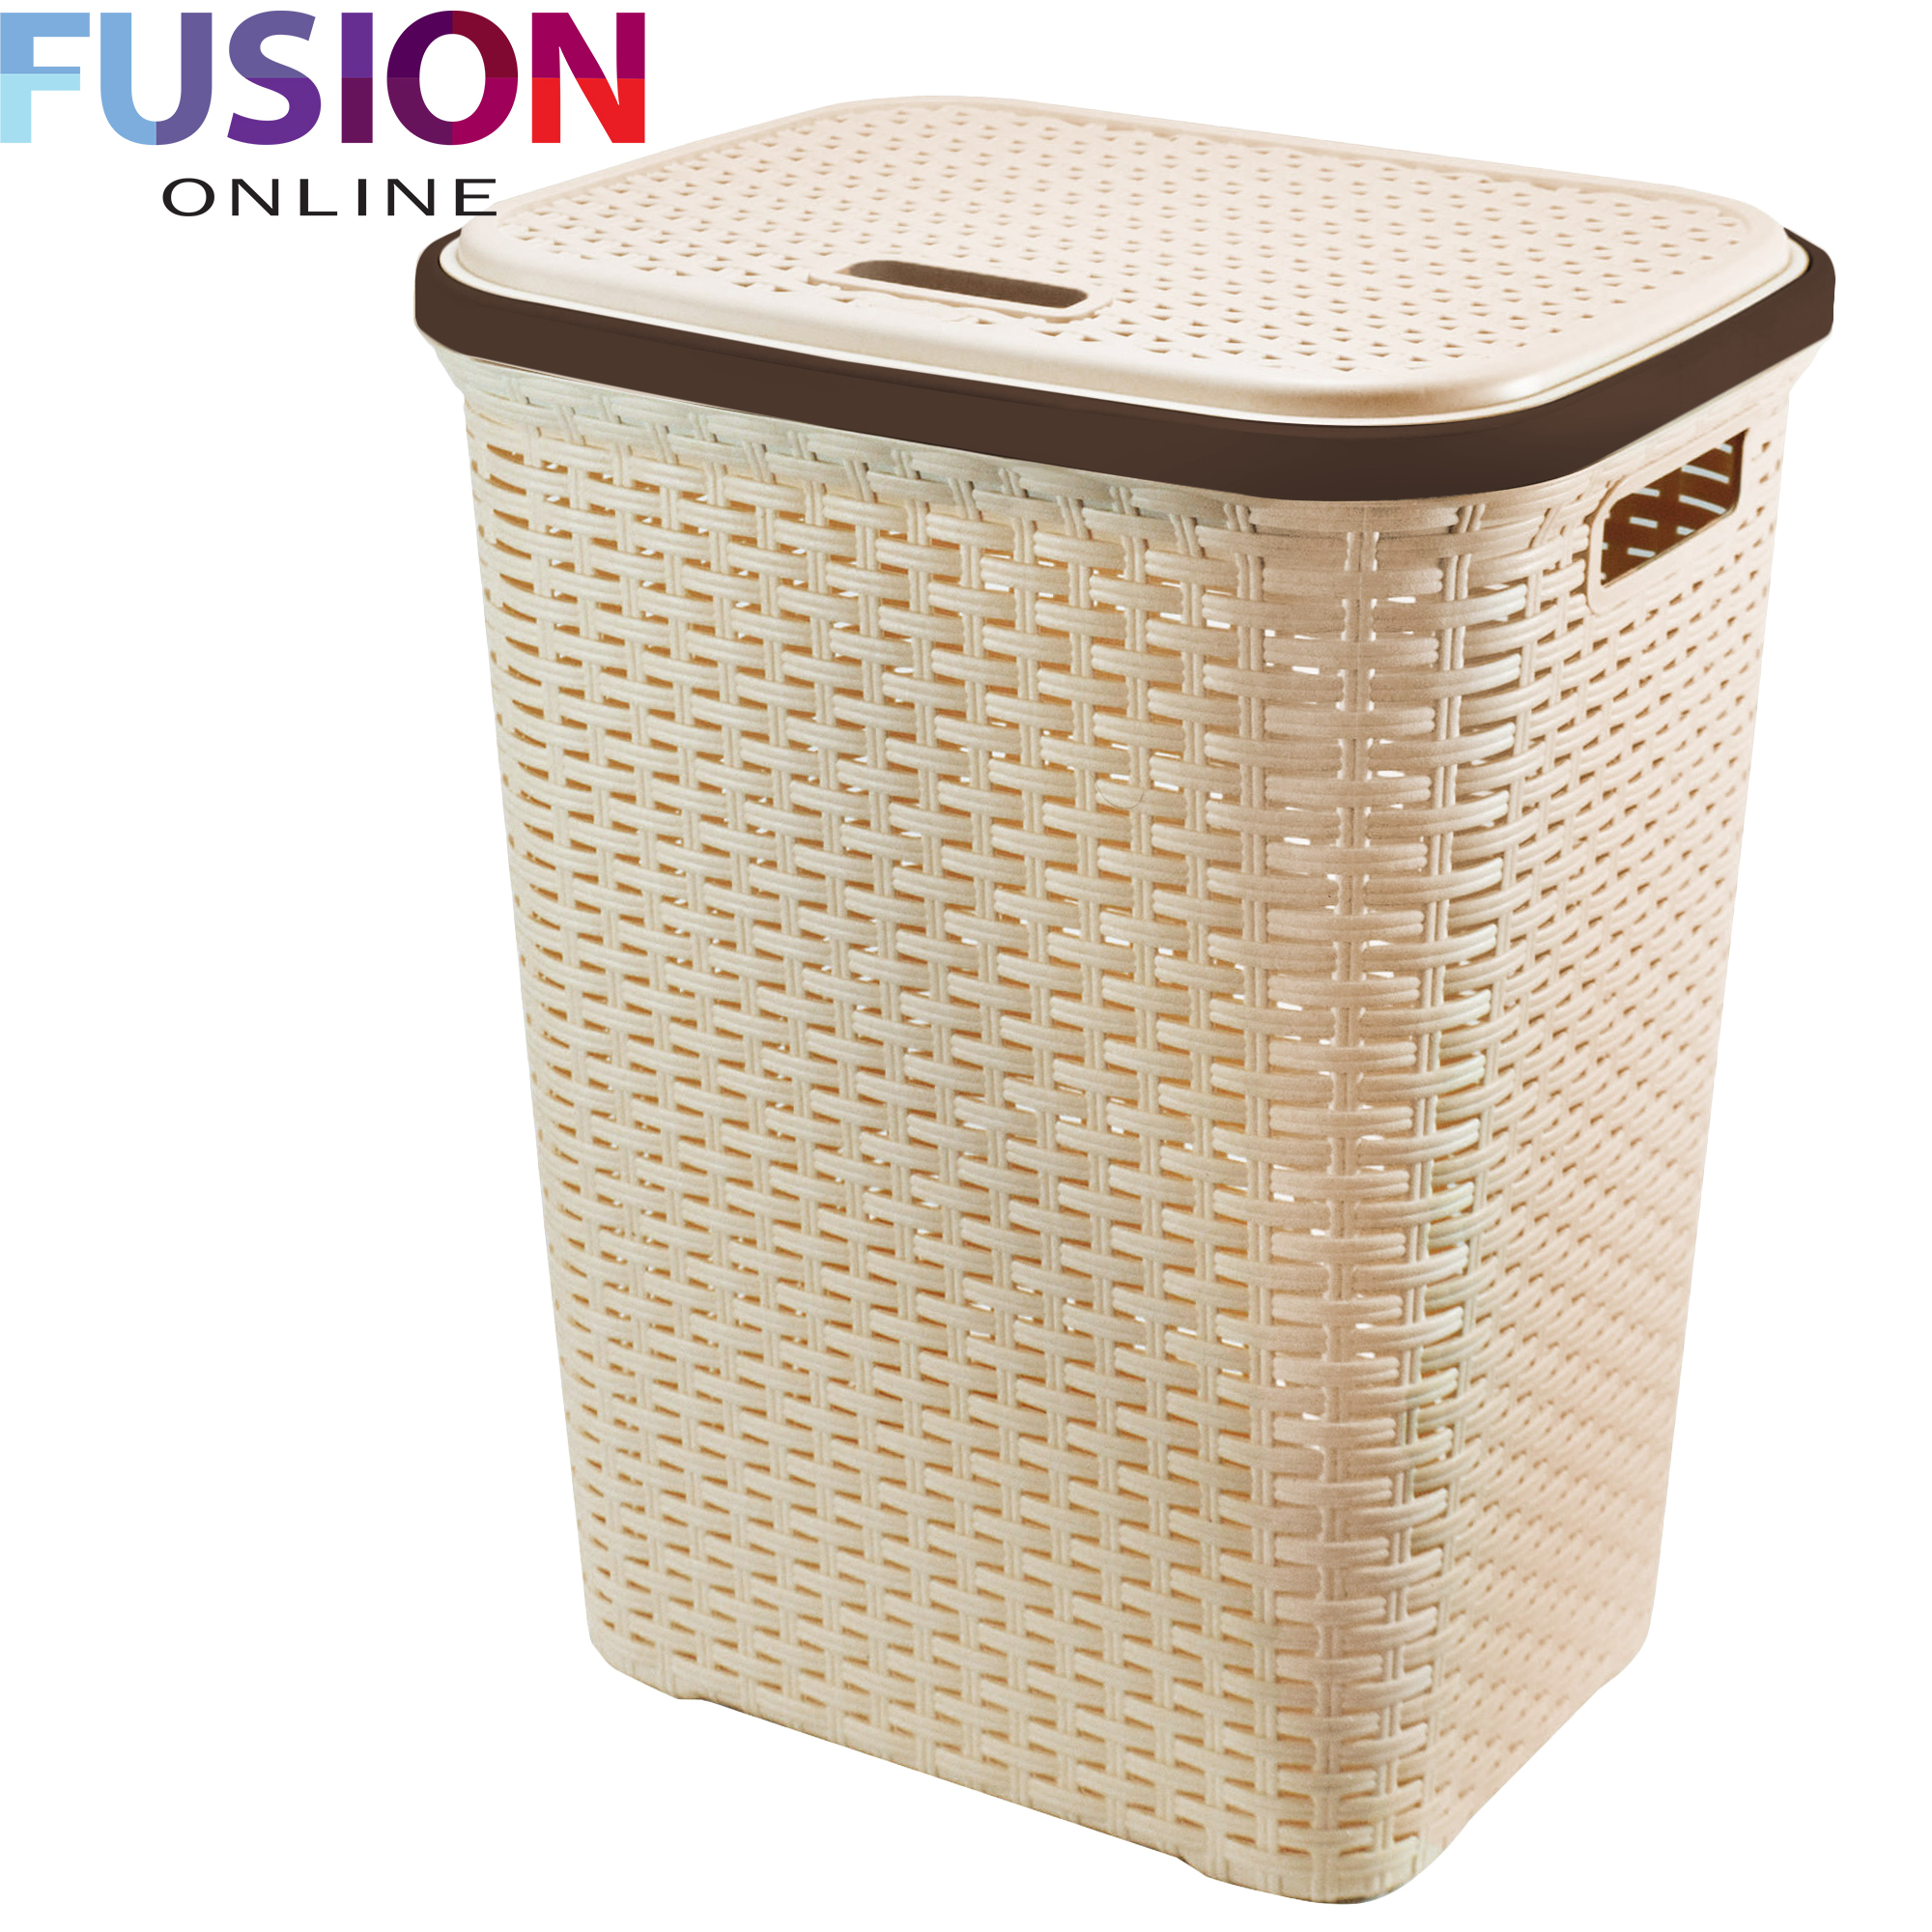 Wicker Laundry Baskets Large Laundry Basket Washing Clothes Storage Hamper Rattan